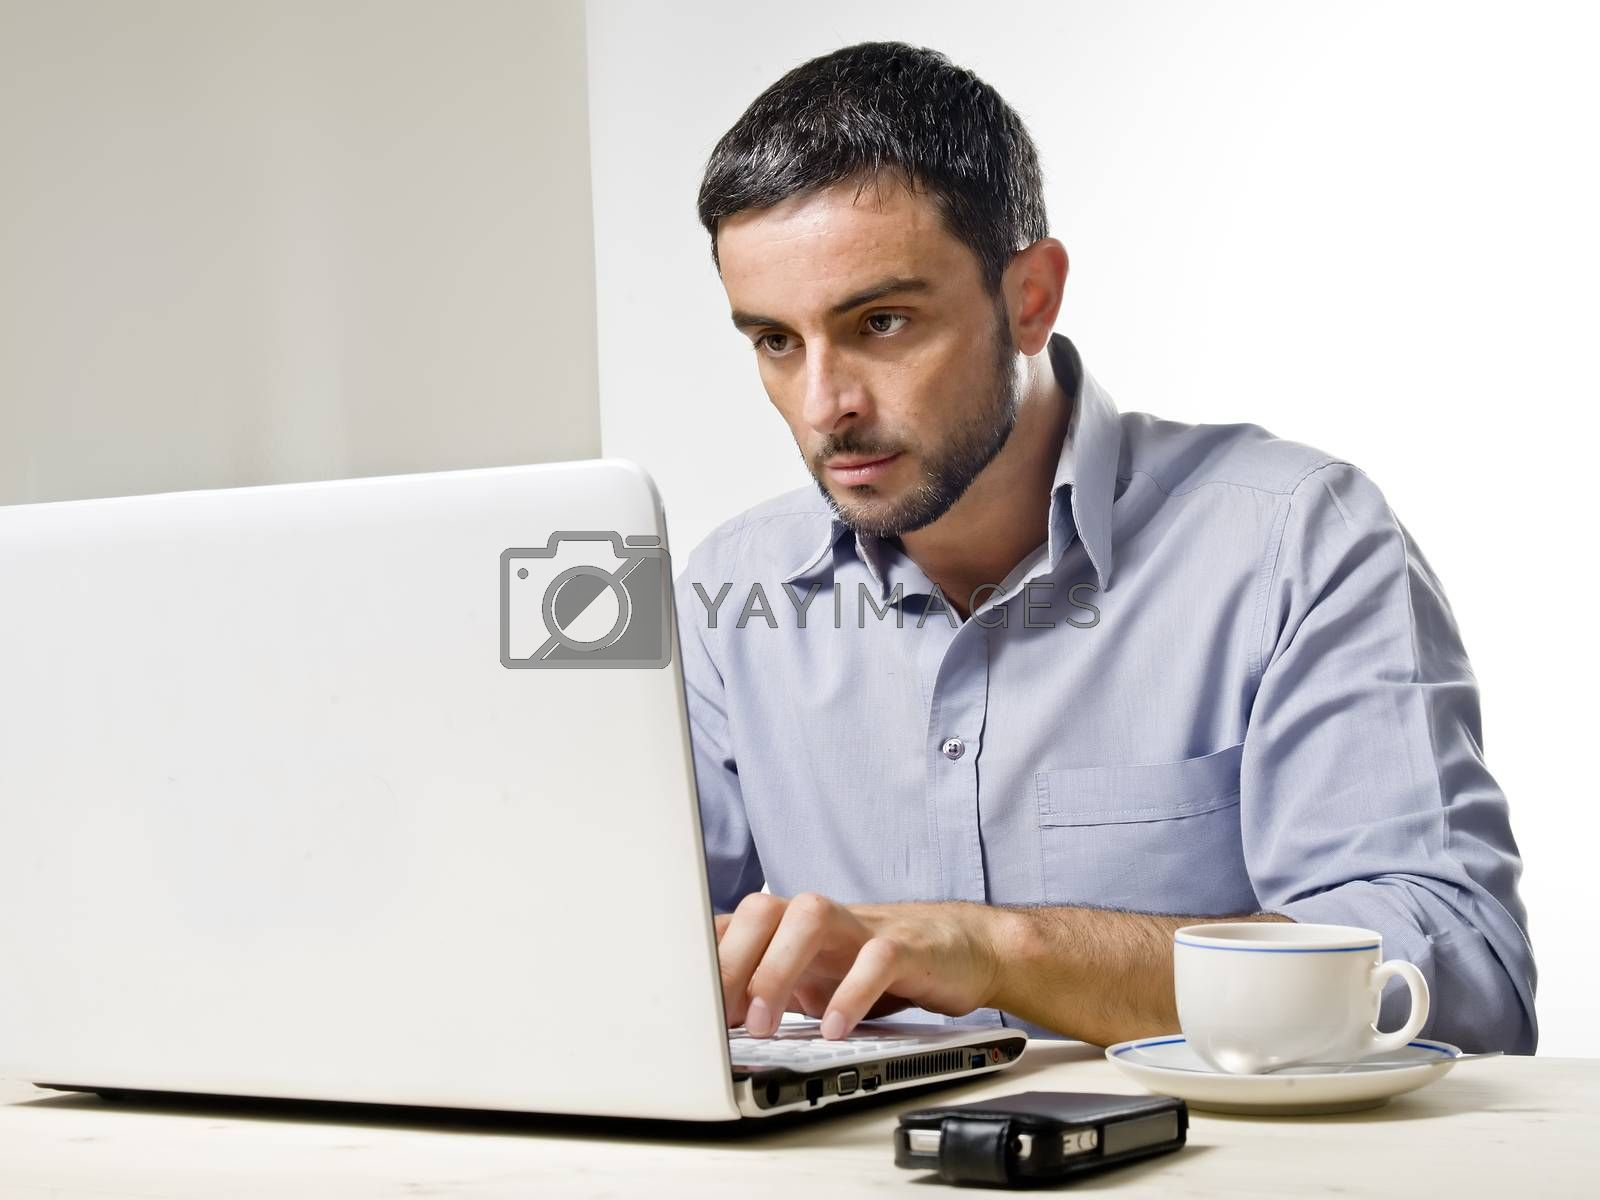 Young Man with Beard Working on Laptop isolated on a White Background